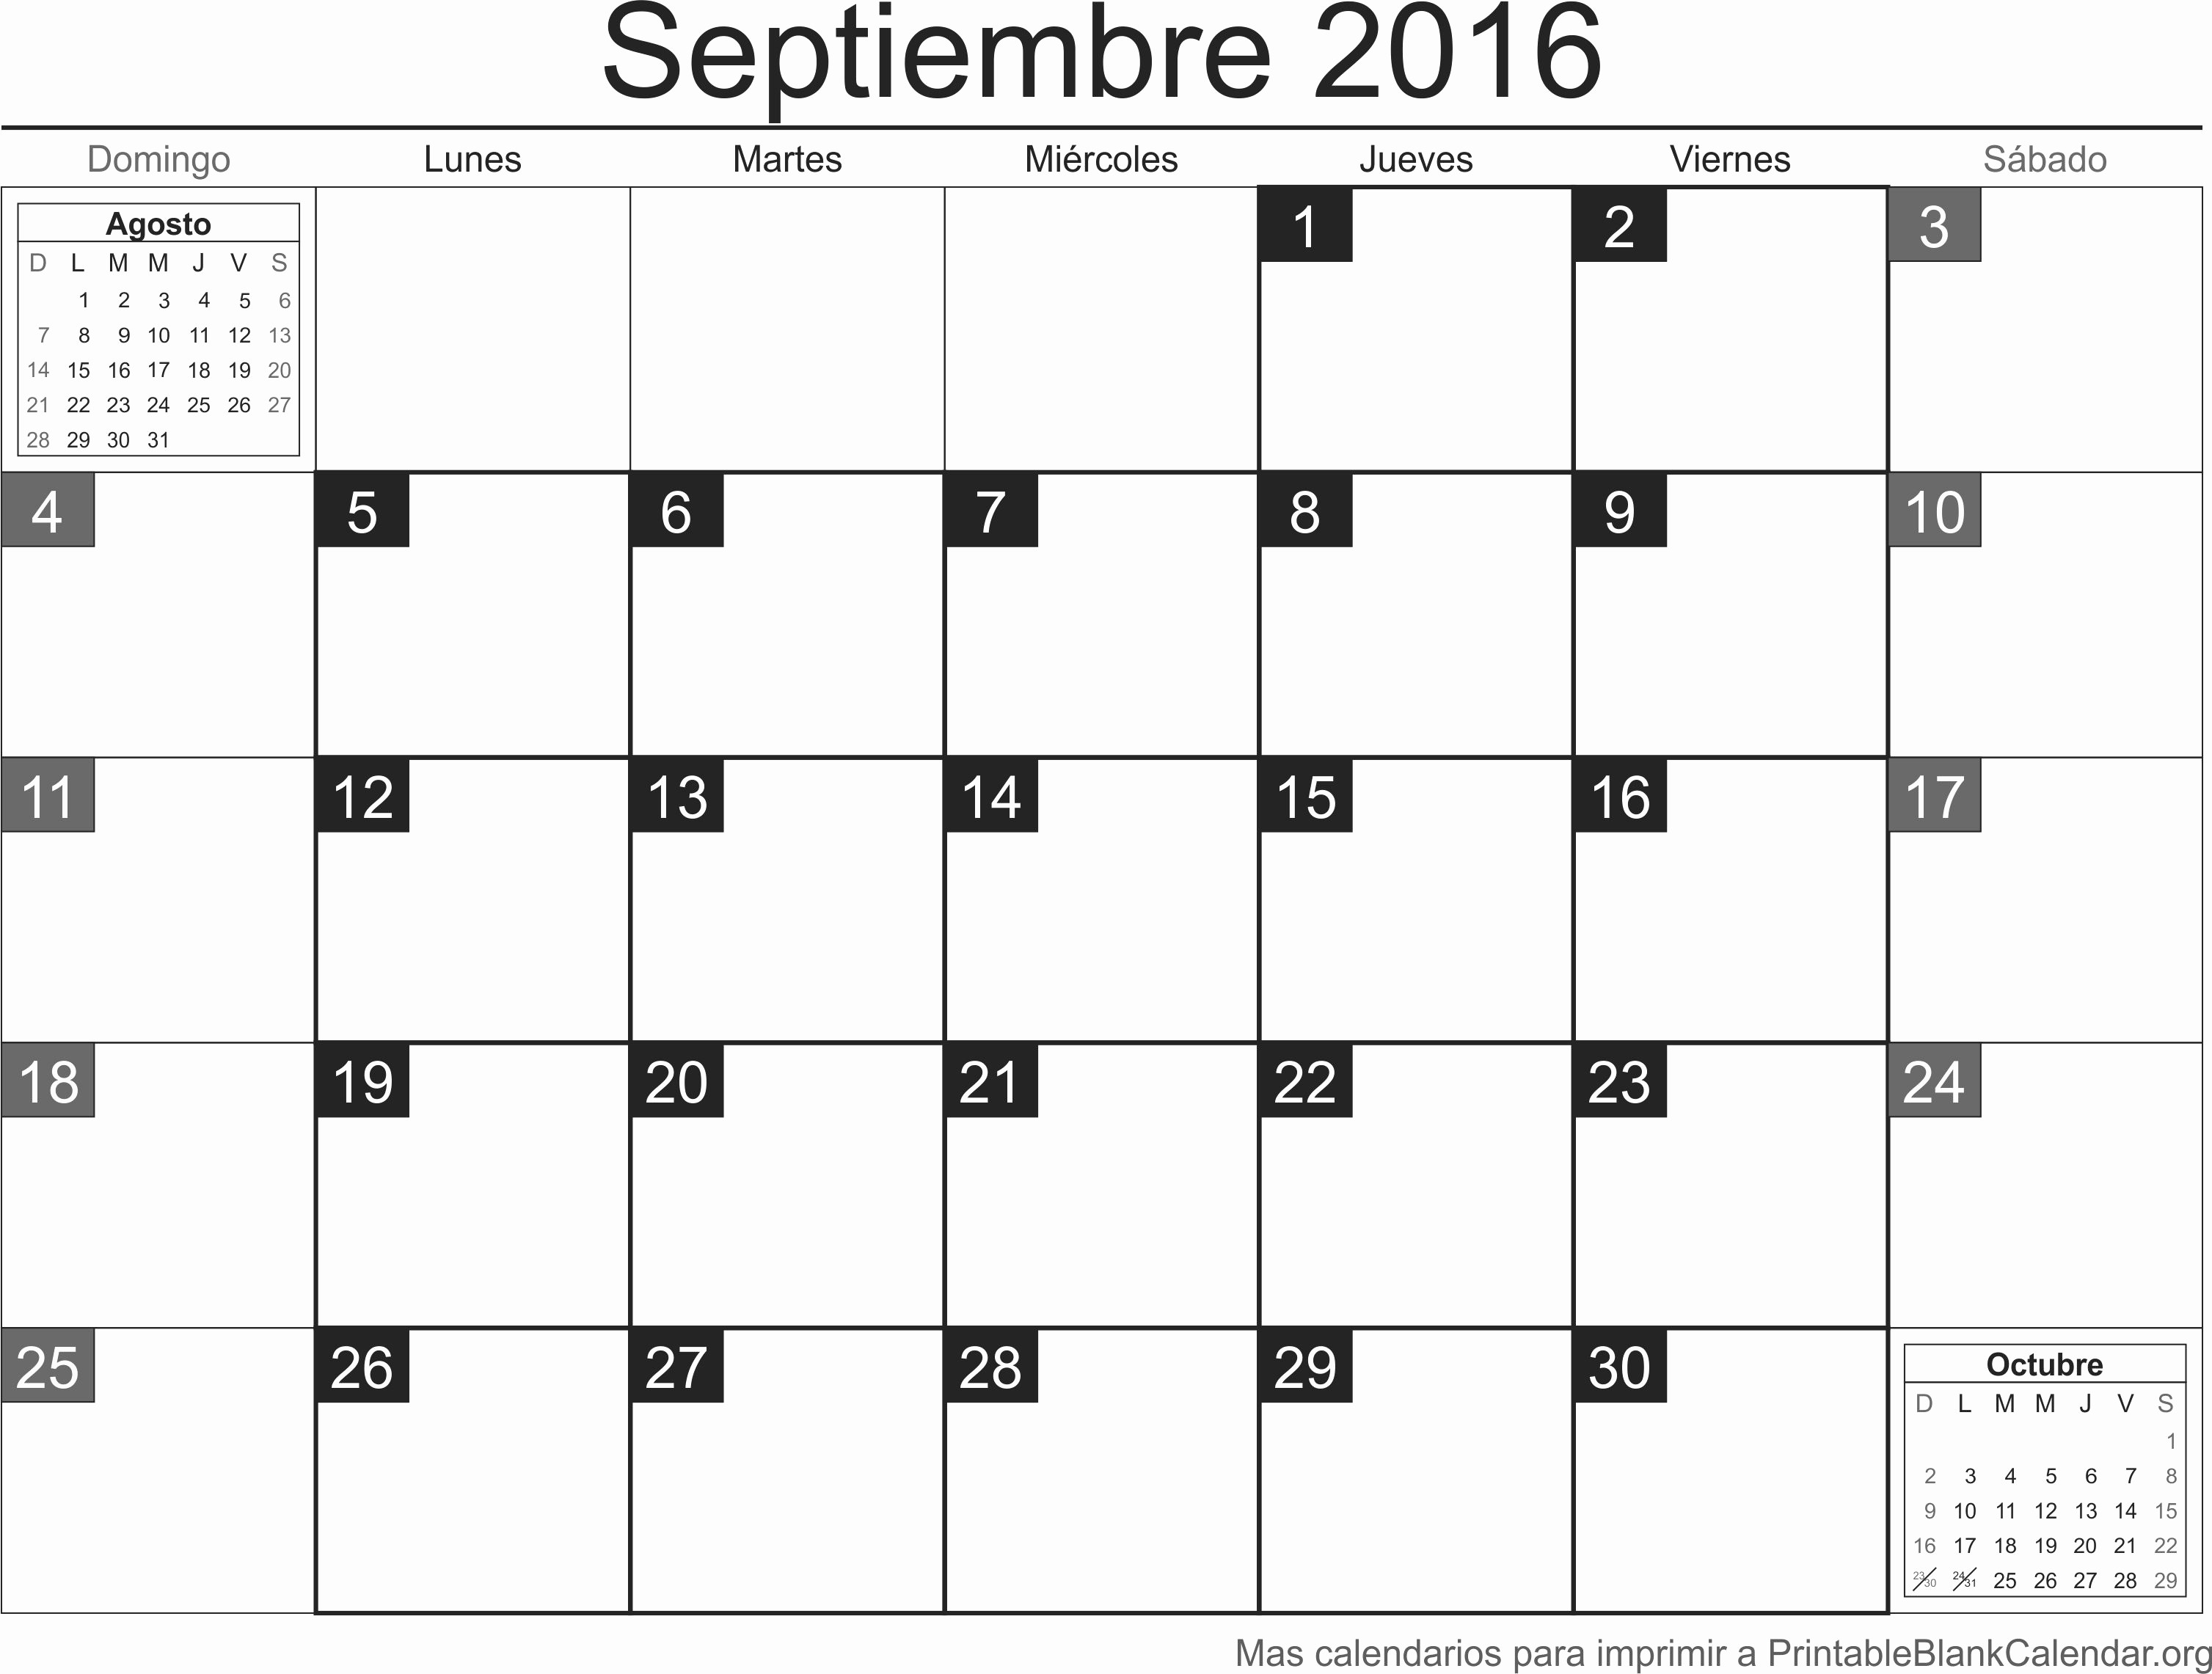 Calendario Diciembre 2017 Para Imprimir Inspirational Calendario 2016 Para Imprimir Septiembre Related Keywords